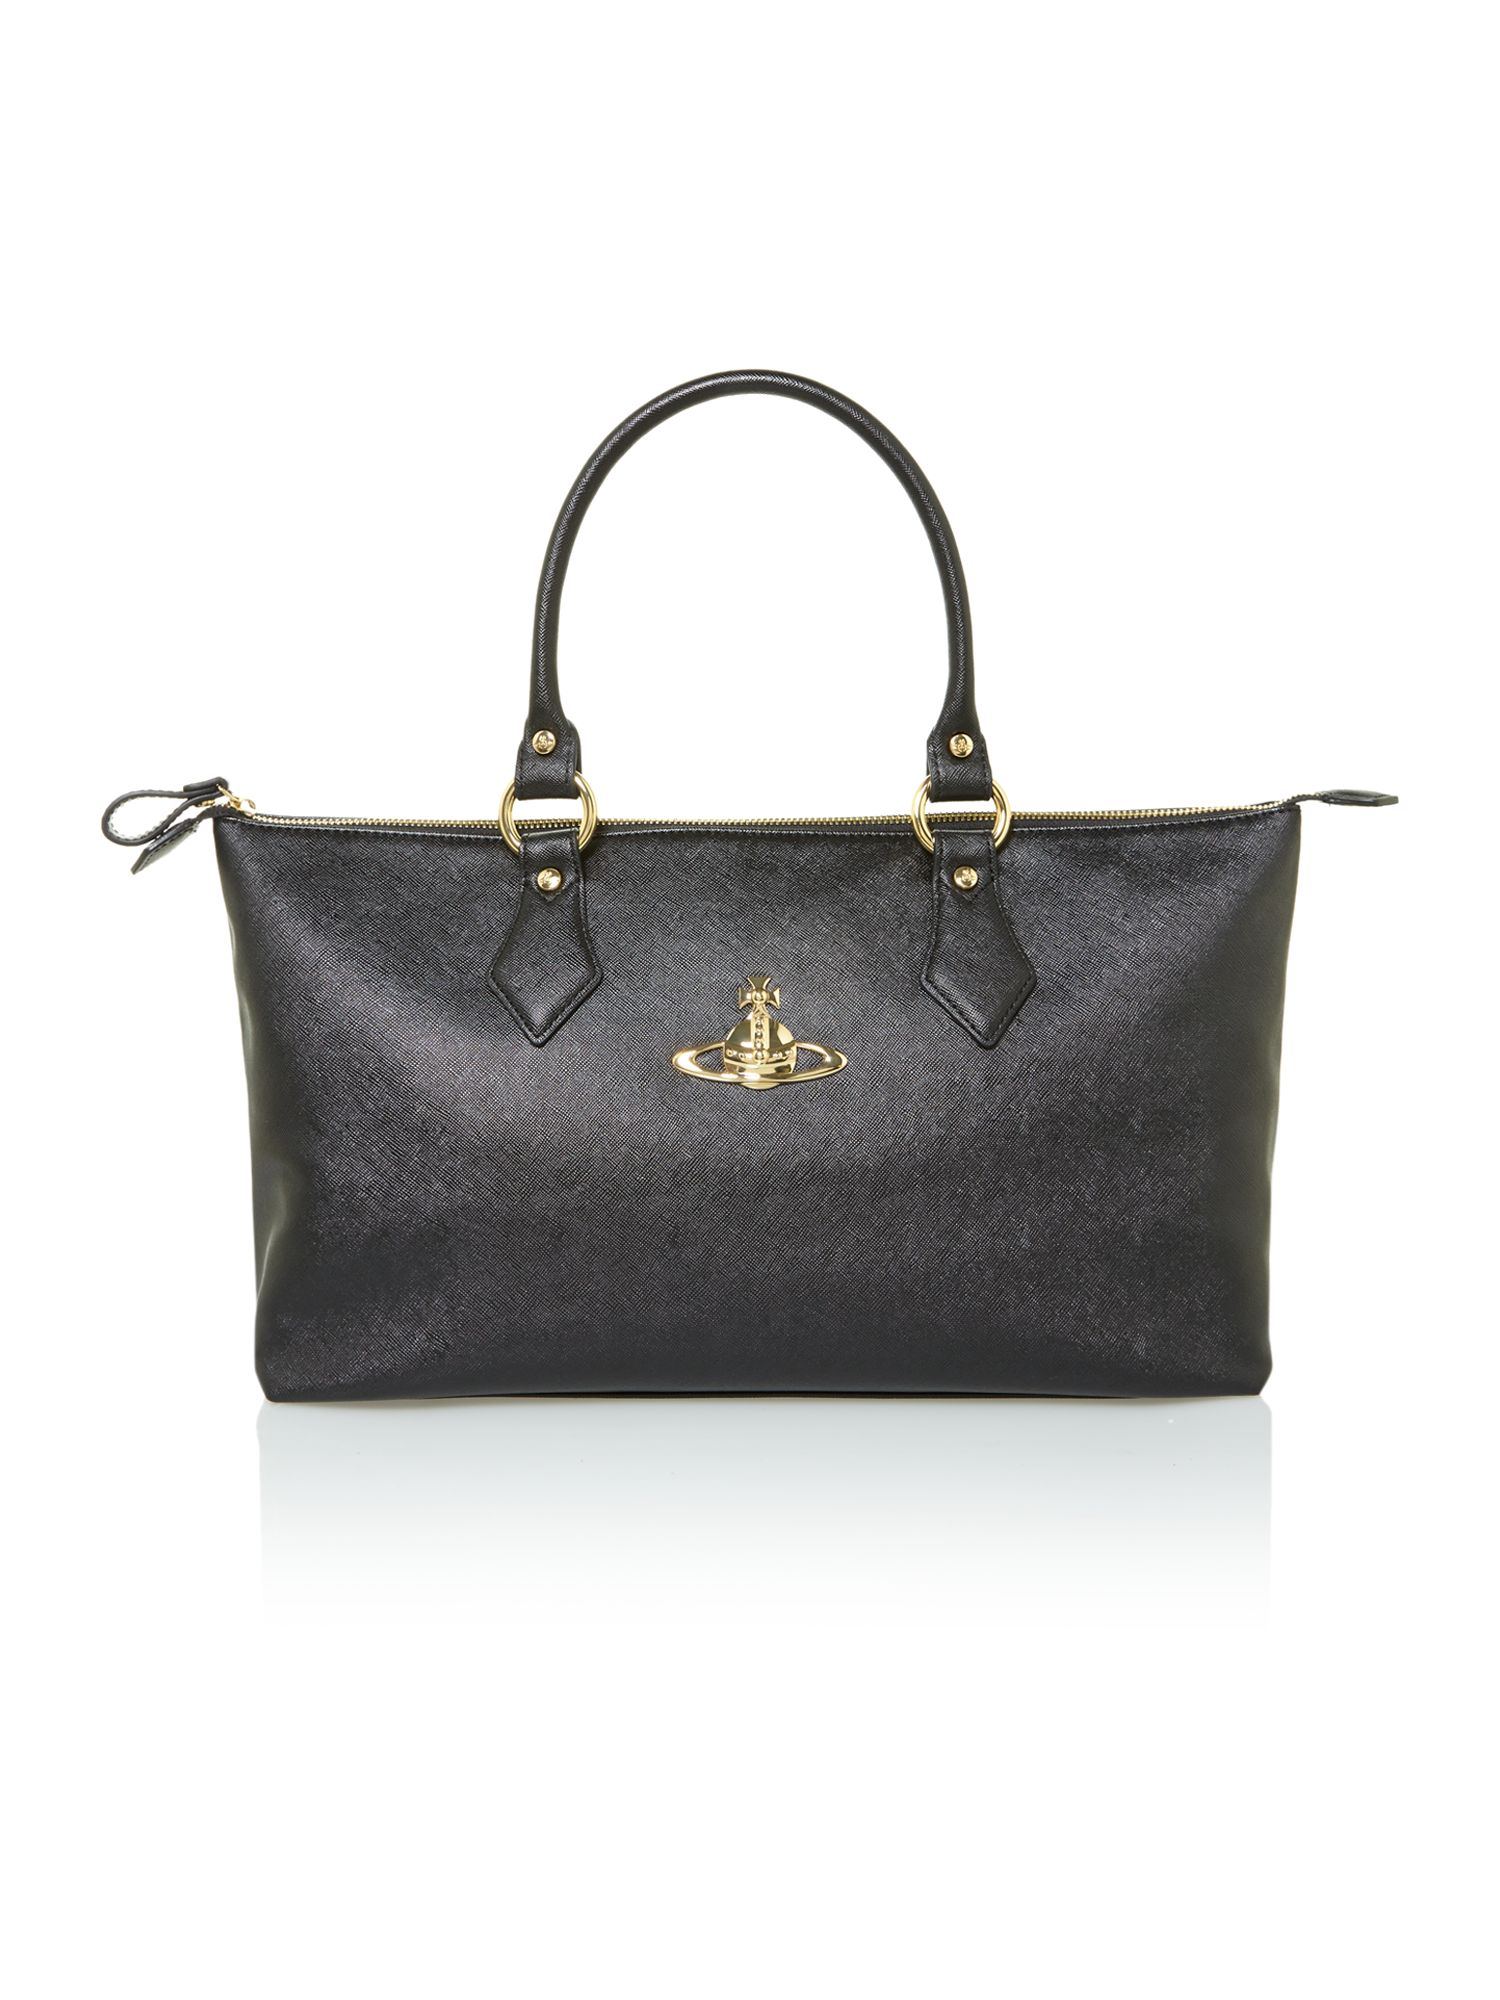 Bow medium black tote bag